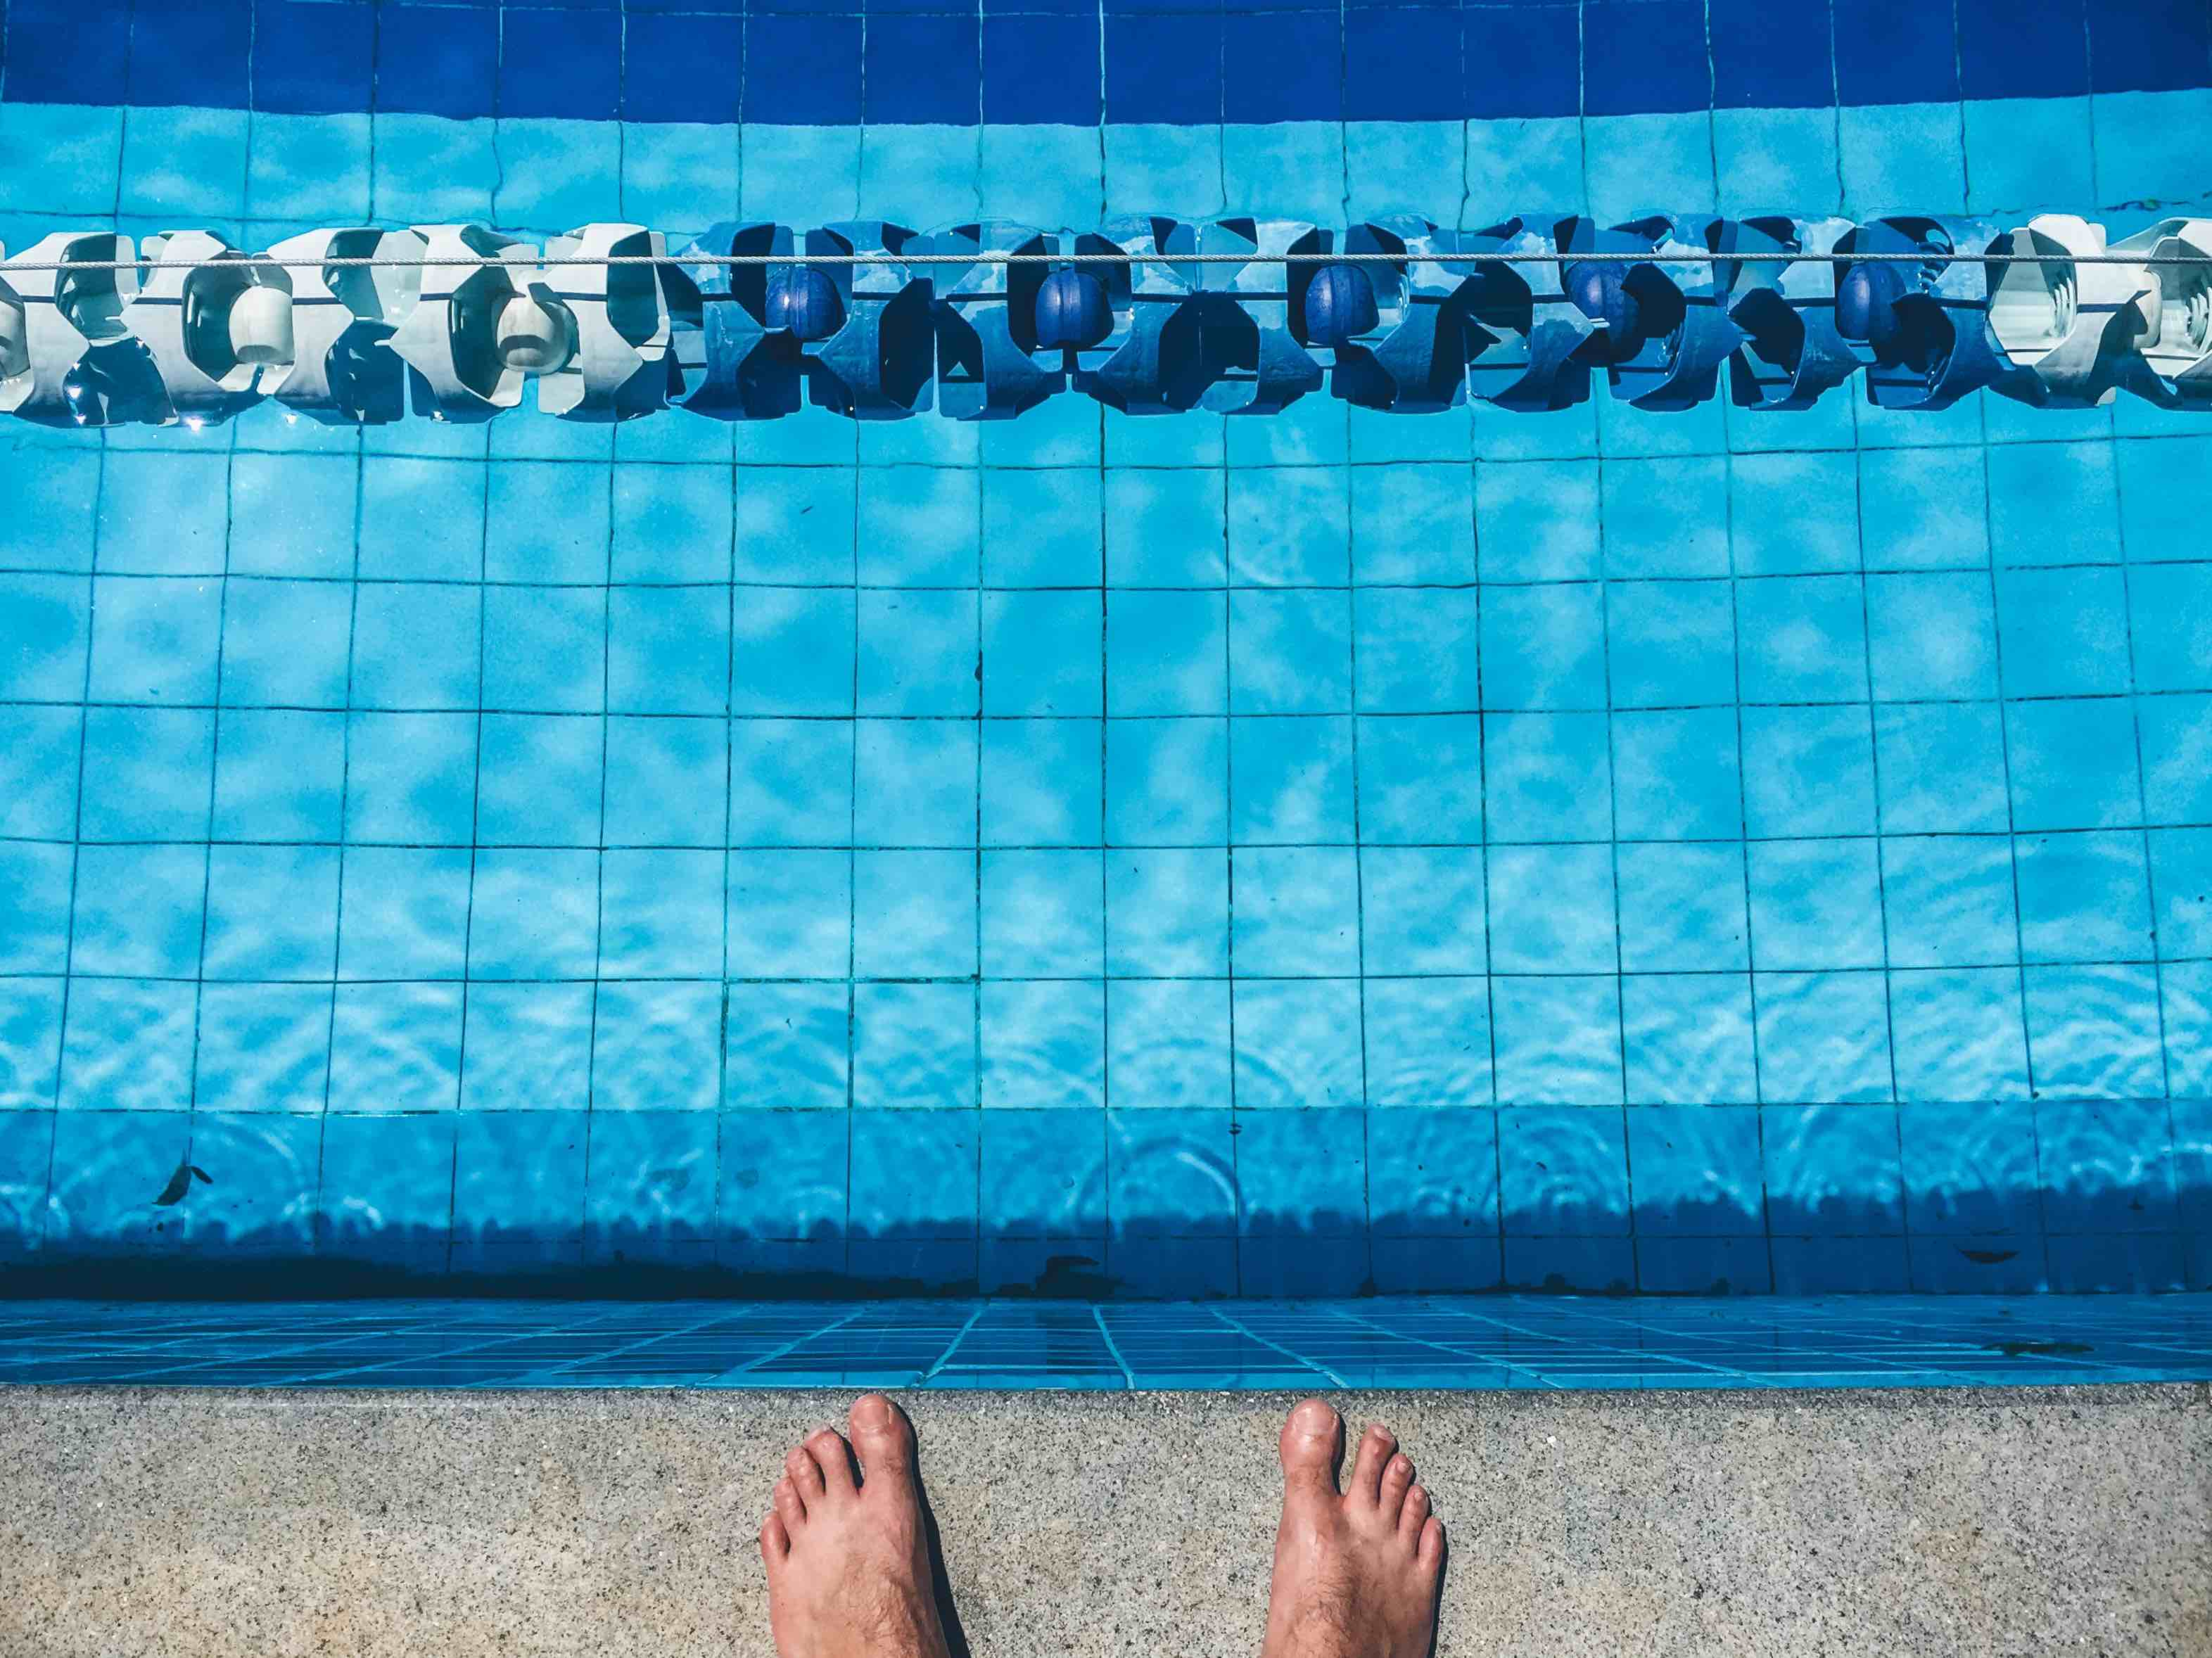 How Much Does A Pool Cost?